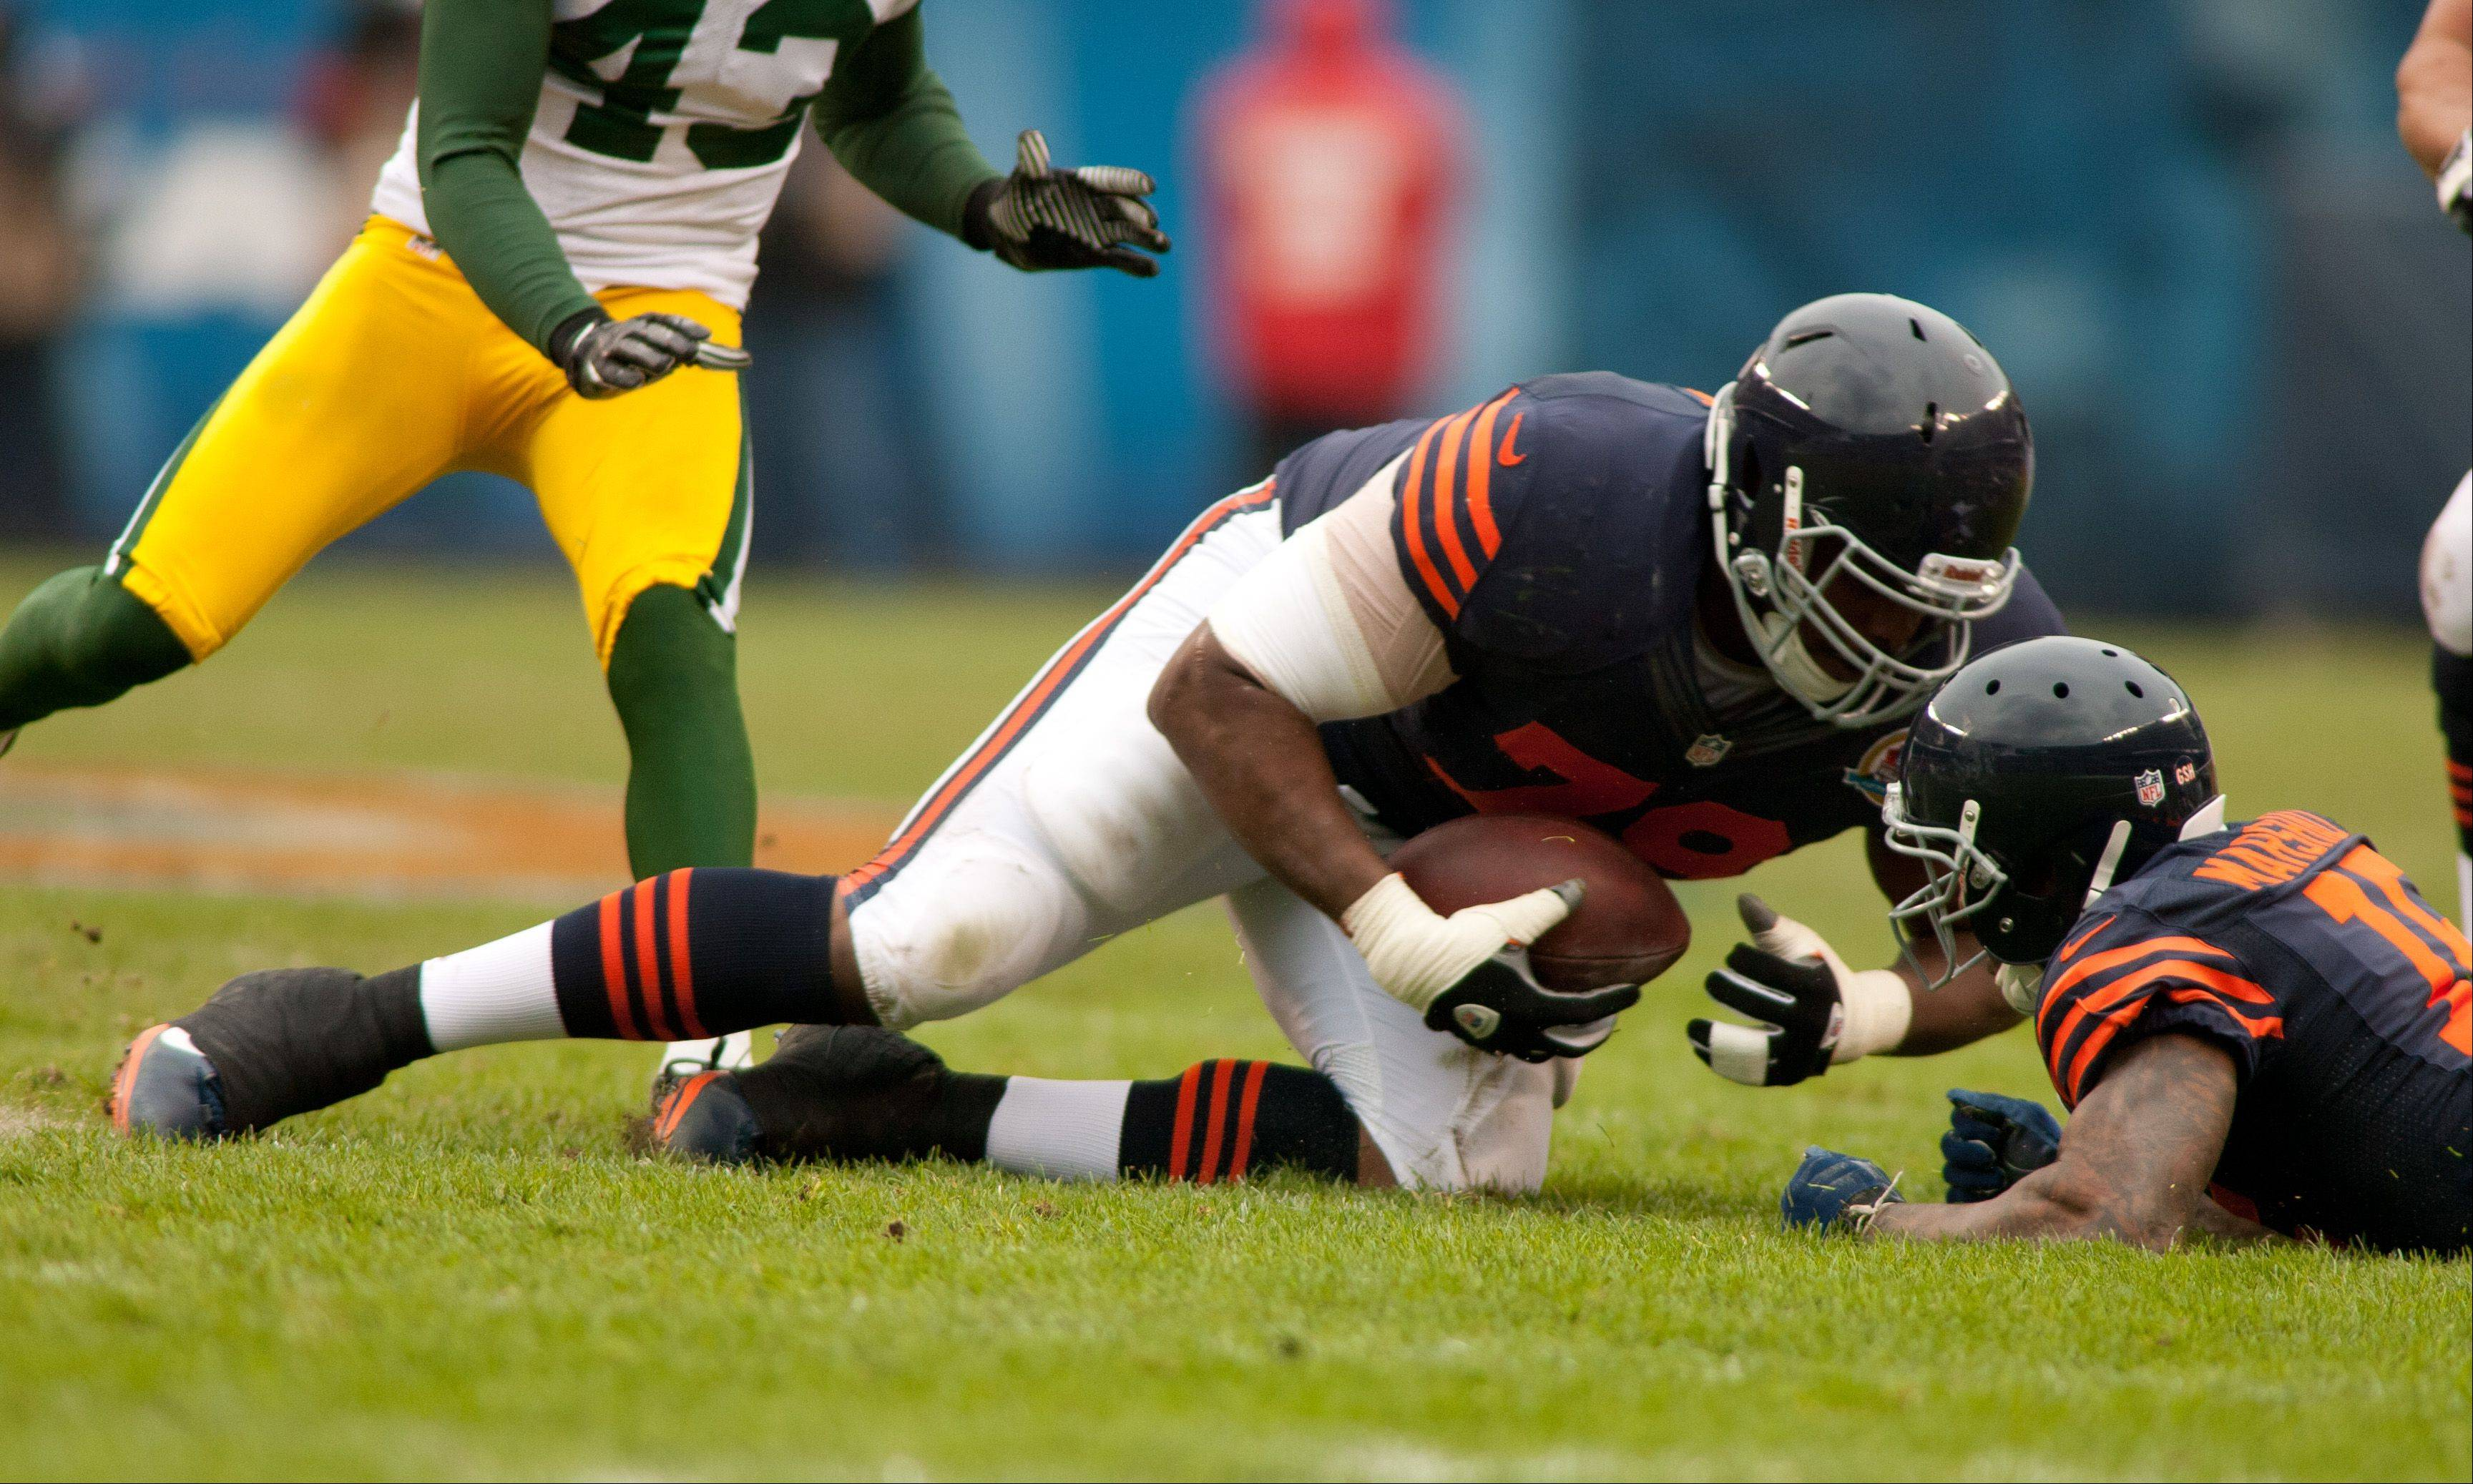 The Bears' J.T. Thomas, left, recovers a Brandon Marshall first half fumble, right, during Sunday's game at Soldier Field in Chicago.